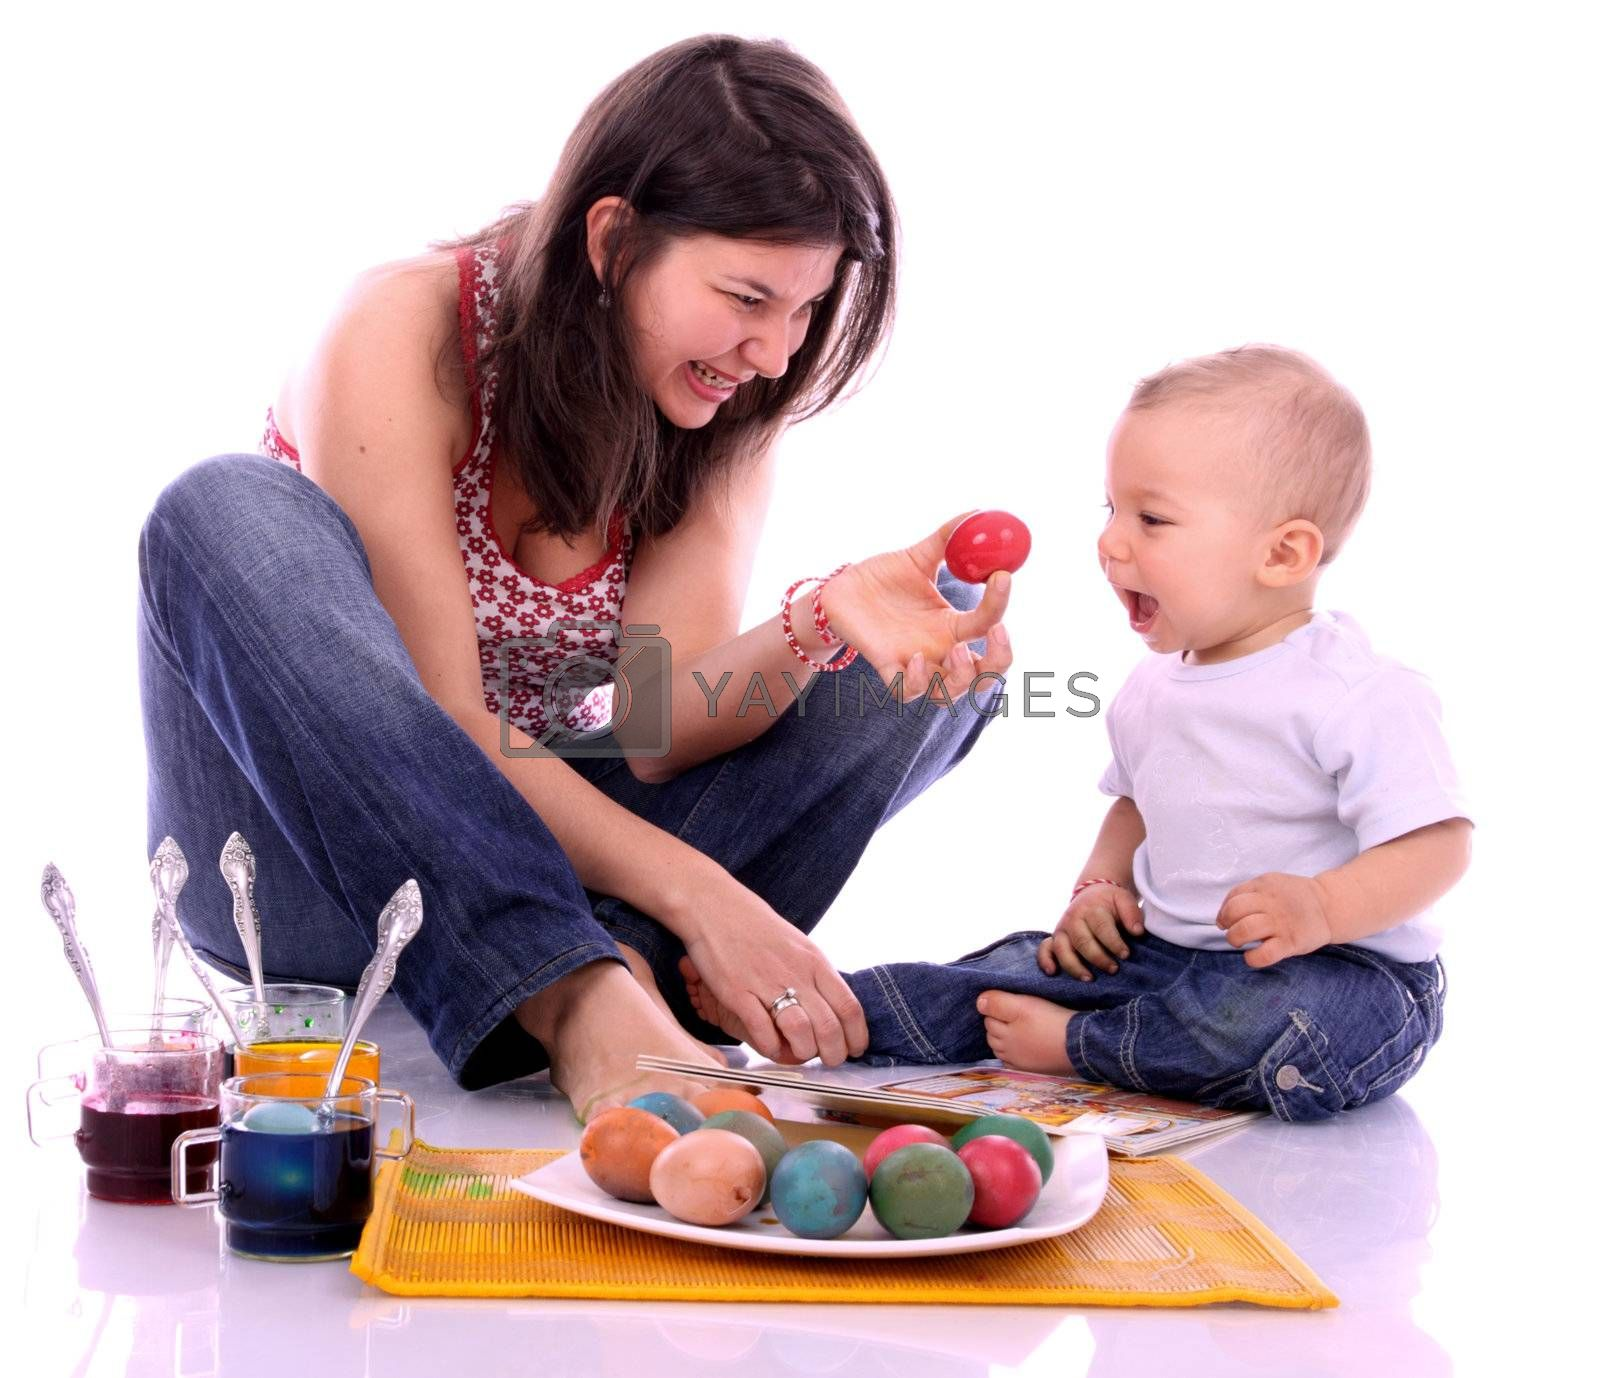 Happy mother and son preparing Easter eggs